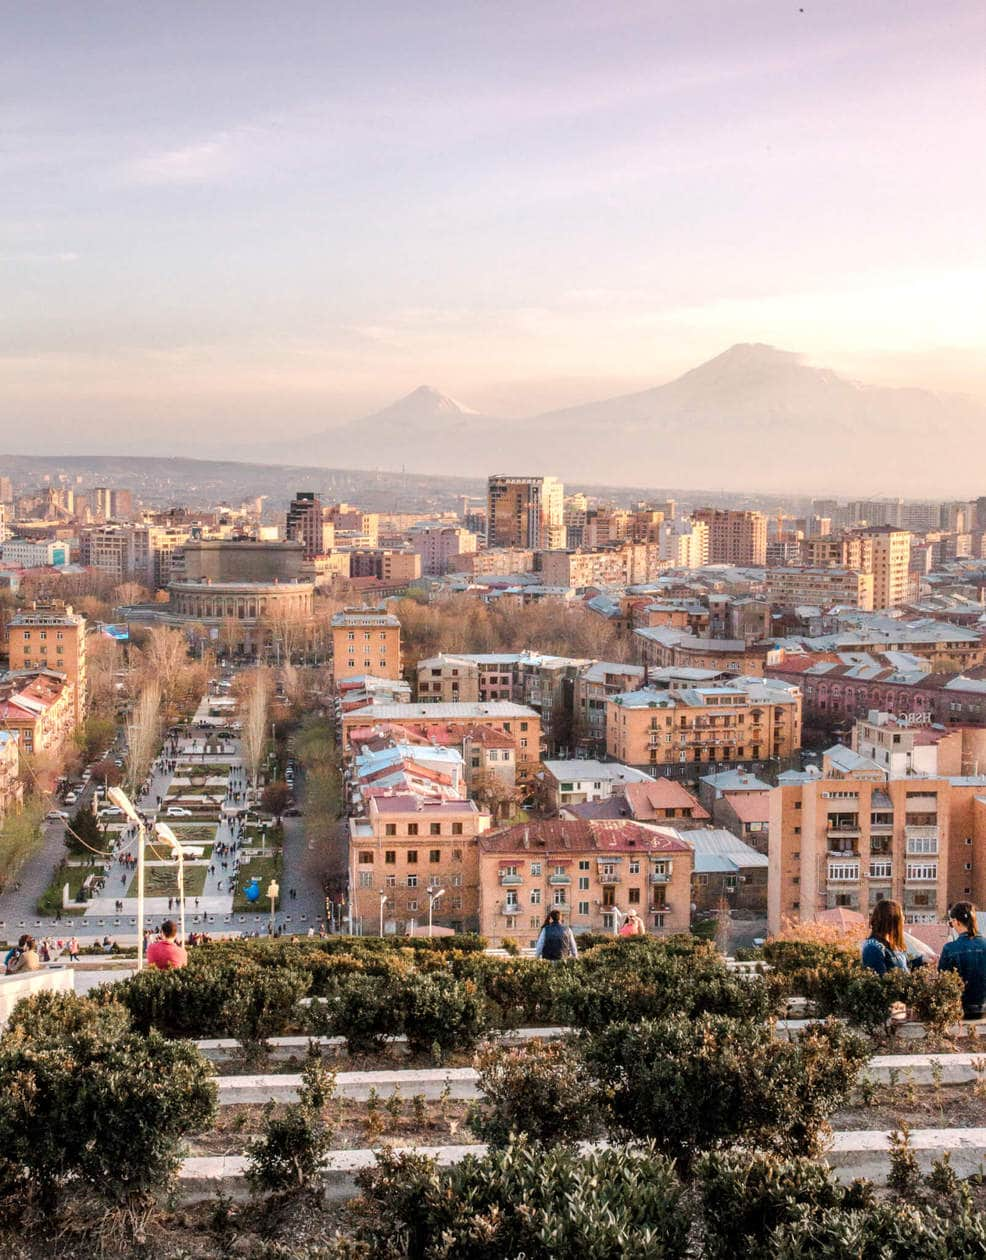 Yerevan from Cascade // Where to try Armenia's legendary brandy, find the best deals on locals souvenirs and discover the best view of the The Pink City (best seen during sunset!). Keep reading for a list of the top things to do in Yerevan, plus 5 hotels to fit any budget.